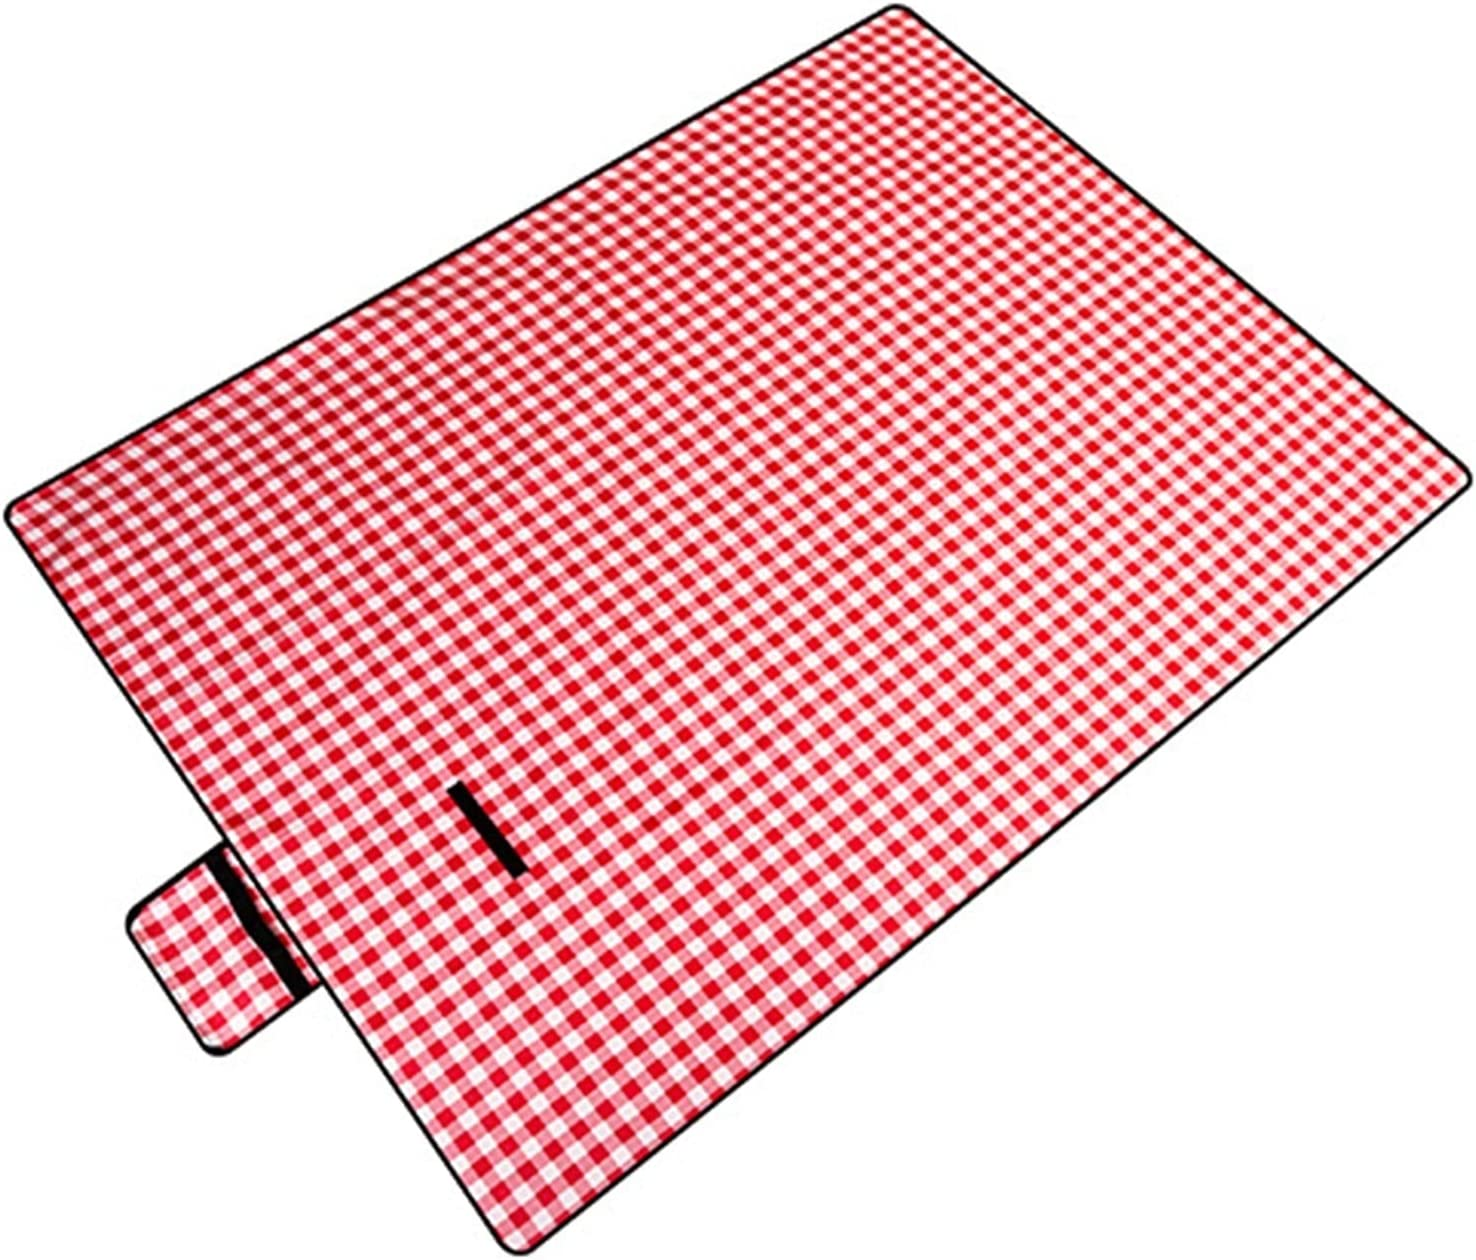 Alibama Picnic Blanket Mat Challenge the lowest price OFFicial shop Waterproof Outd Extra Large Handy